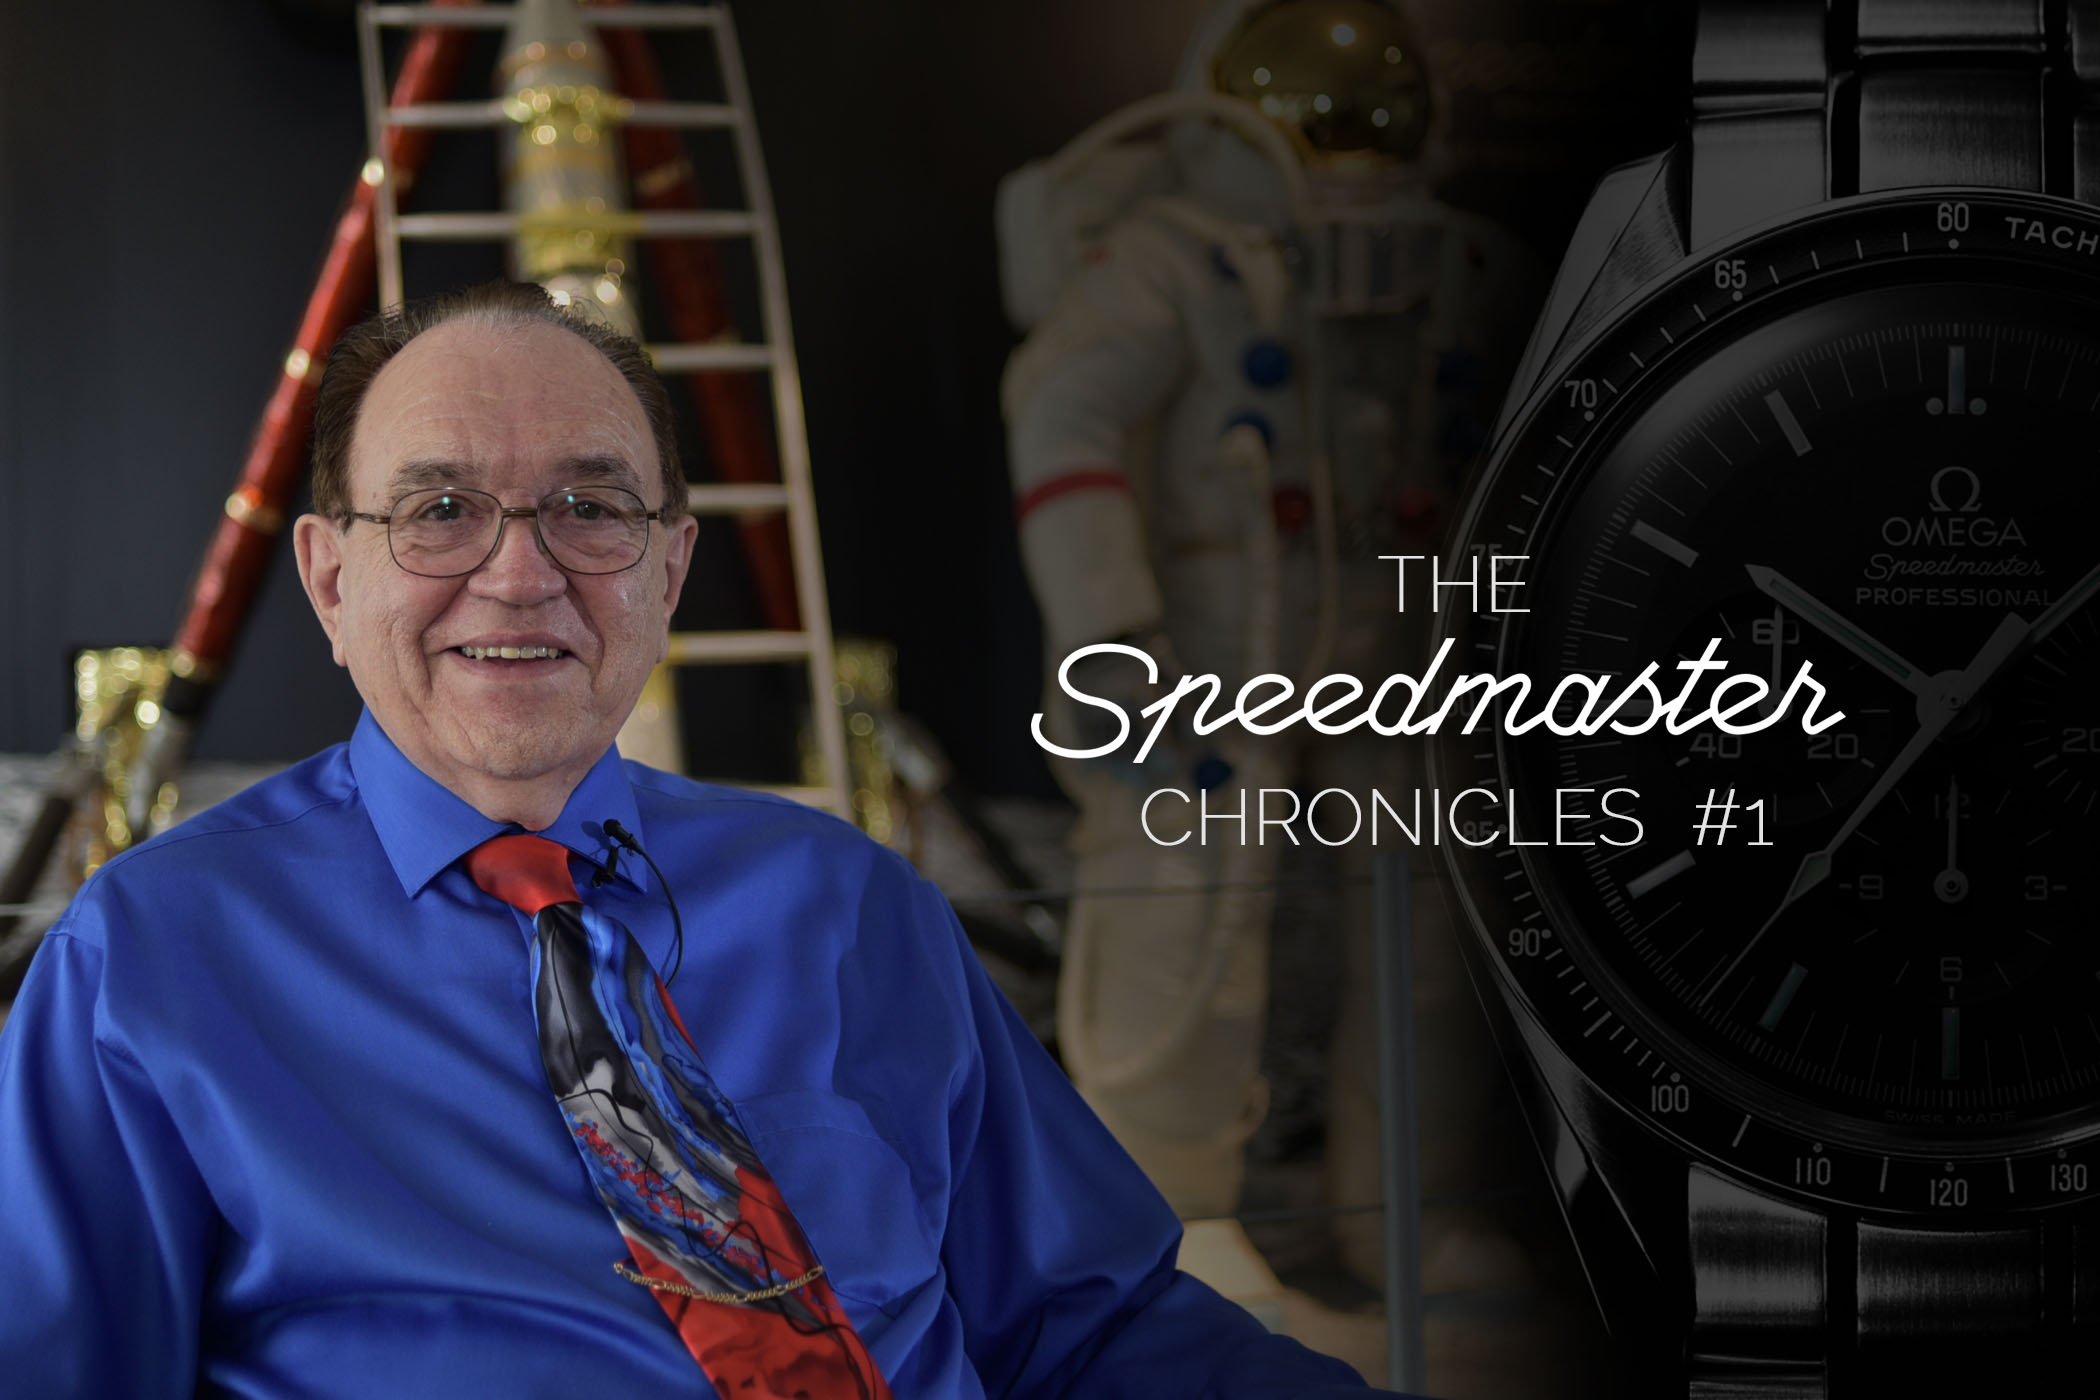 The Speedmaster Chronicles 1 - James H. Ragan, The Former NASA-Engineer Responsible for the Moonwatch